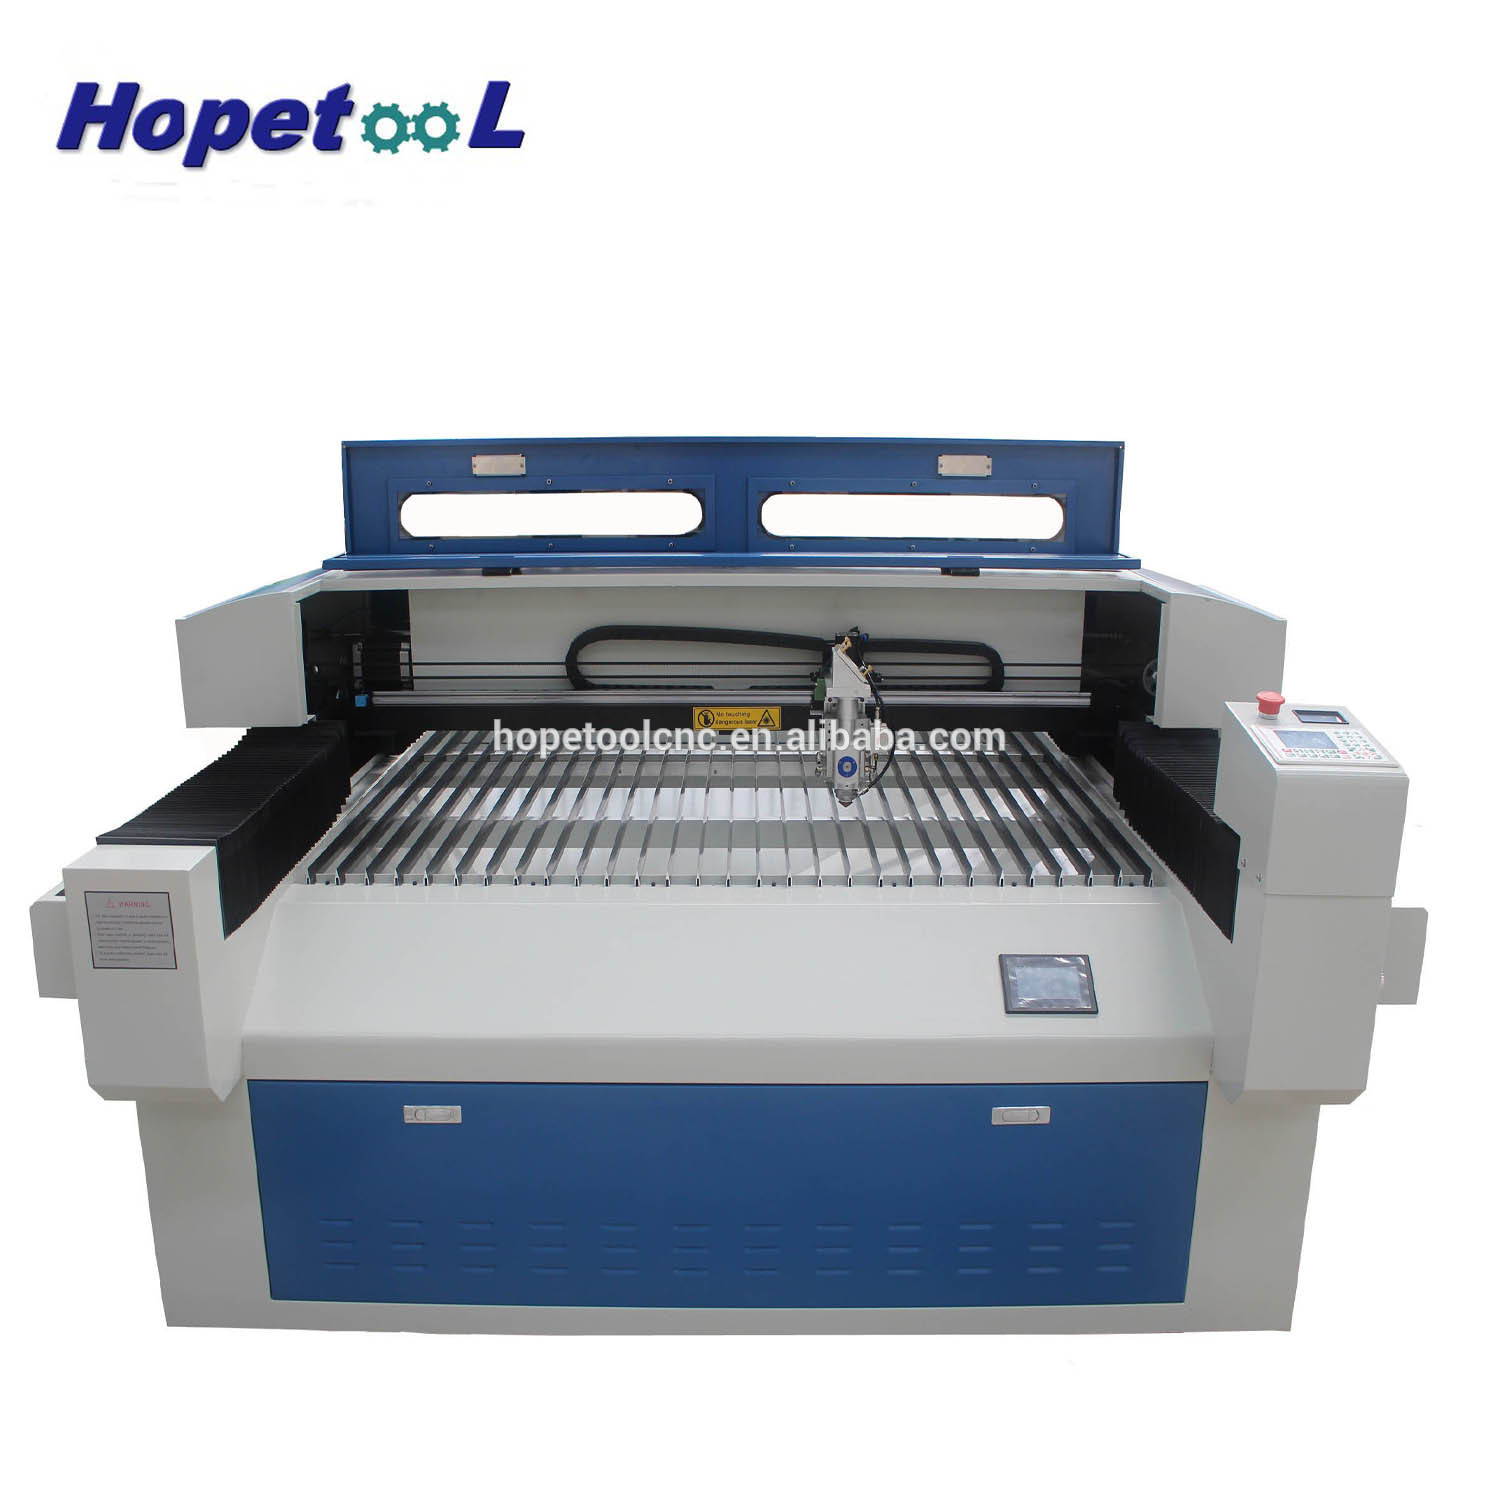 1325 mixed longtime life time 13002500mm size co2 laser cutting machine price